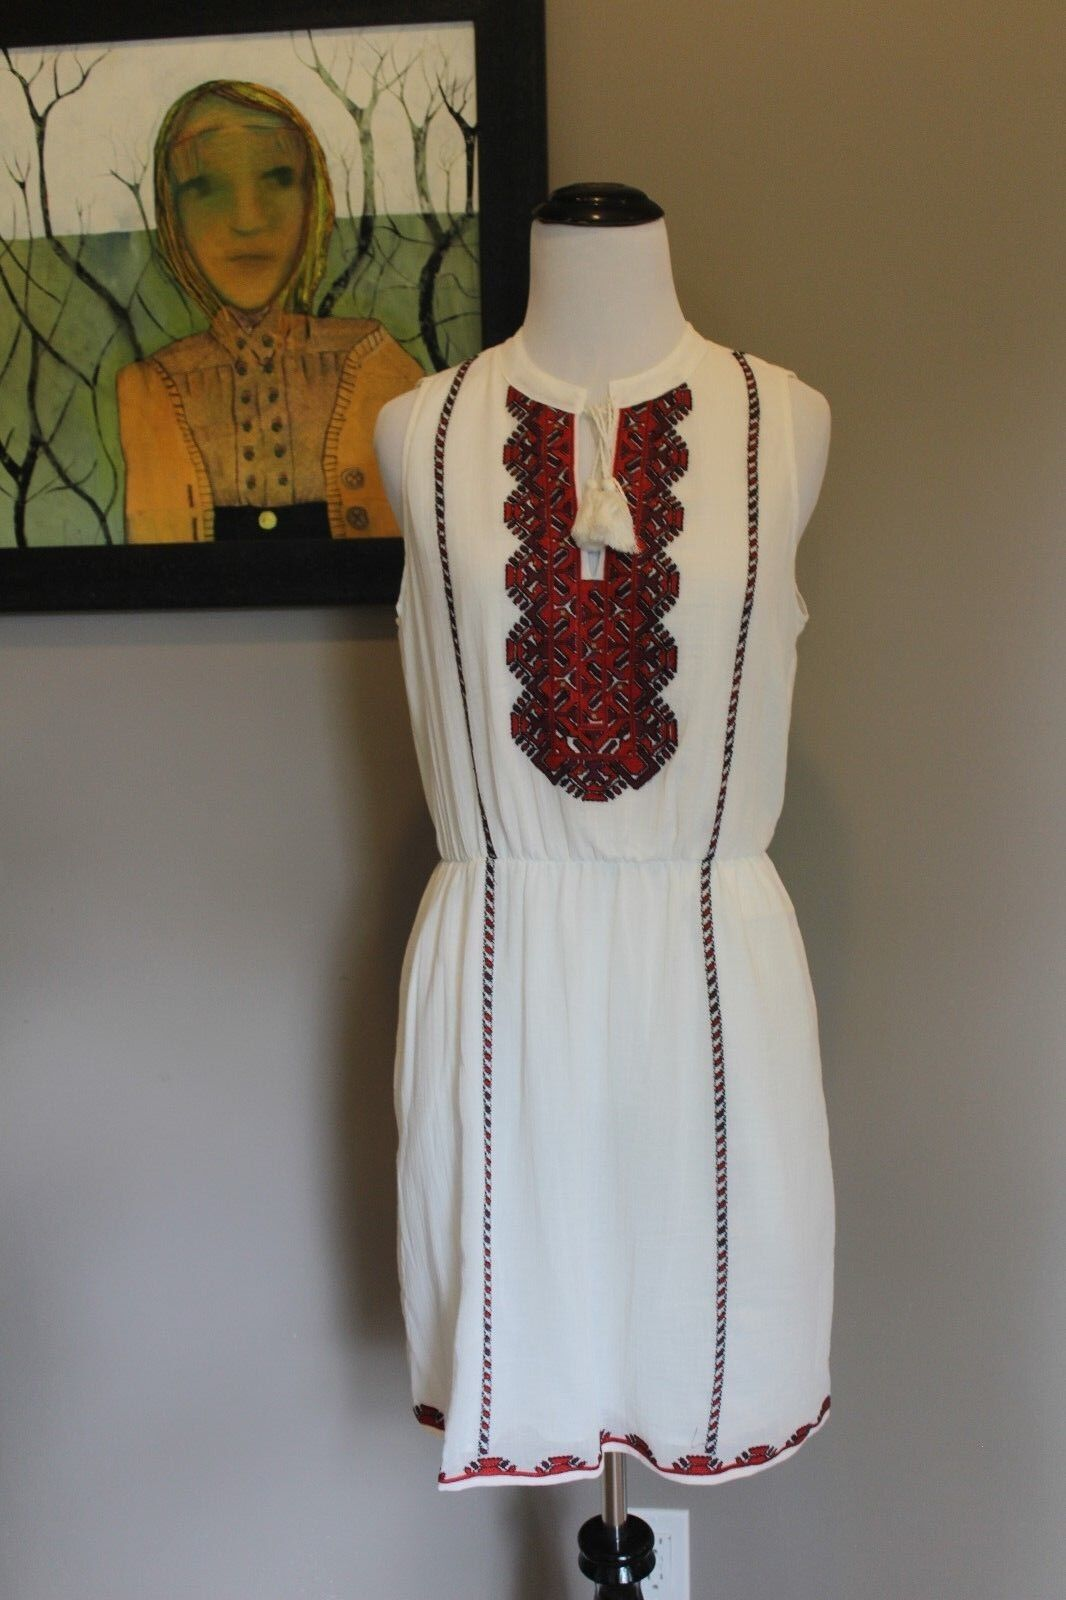 NWT Madewell Embroidered Tassle Dress Sz 6 Small C3449 Sold Out Online  148